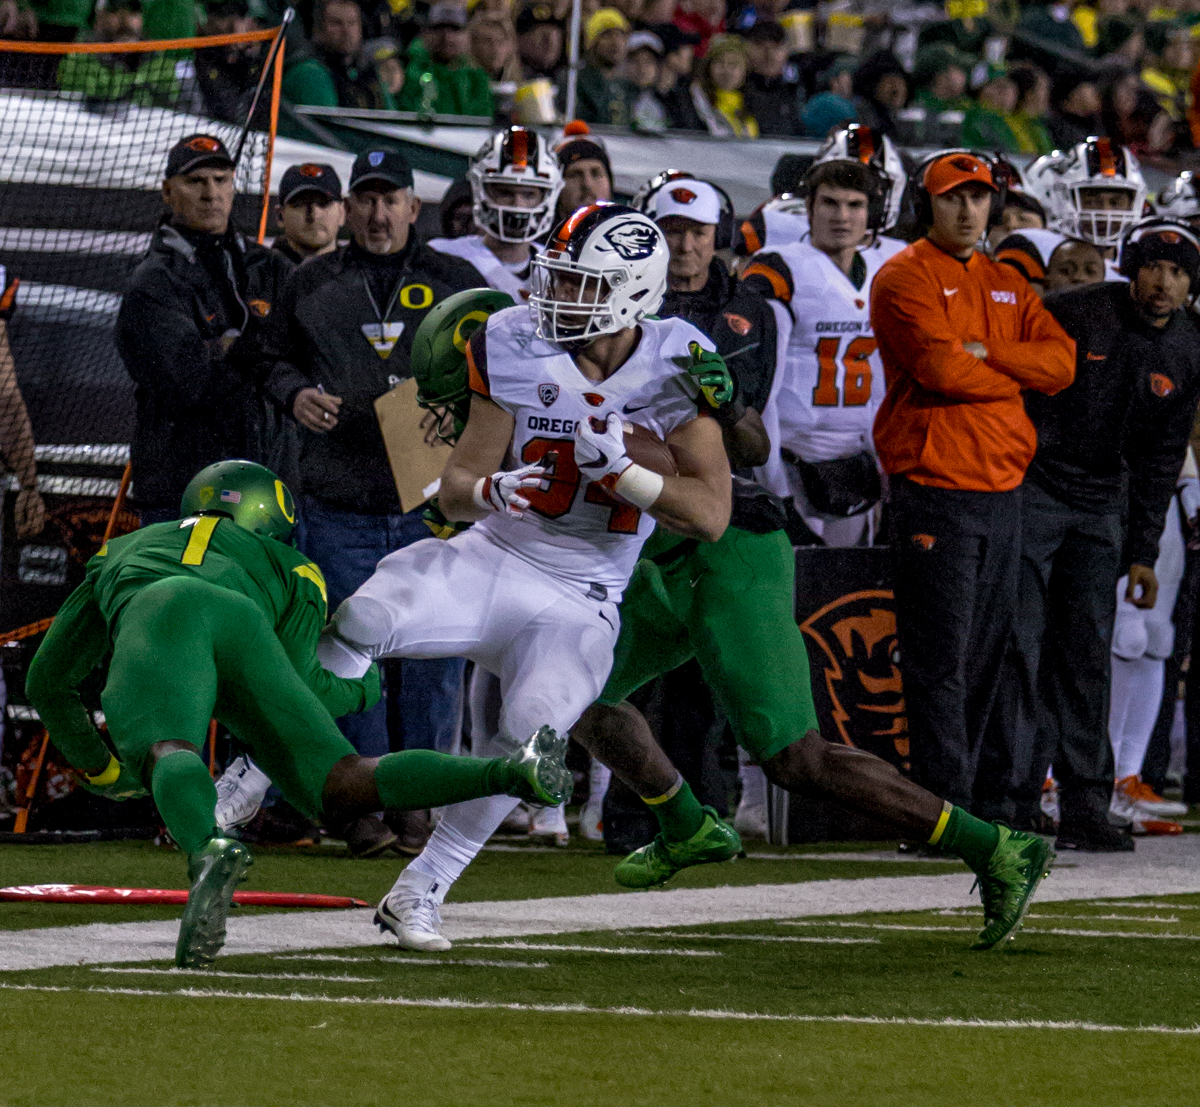 Oregon defensive players take down Oregon State running back Ryan Nall (#34). The Oregon Ducks lead the Oregon State Beavers 52 to 7 at the end of the first half of the 121st Civil War game on Saturday, November 25, 2017 at Autzen Stadium in Eugene, Ore. Photo by Ben Lonergan, Oregon News Lab